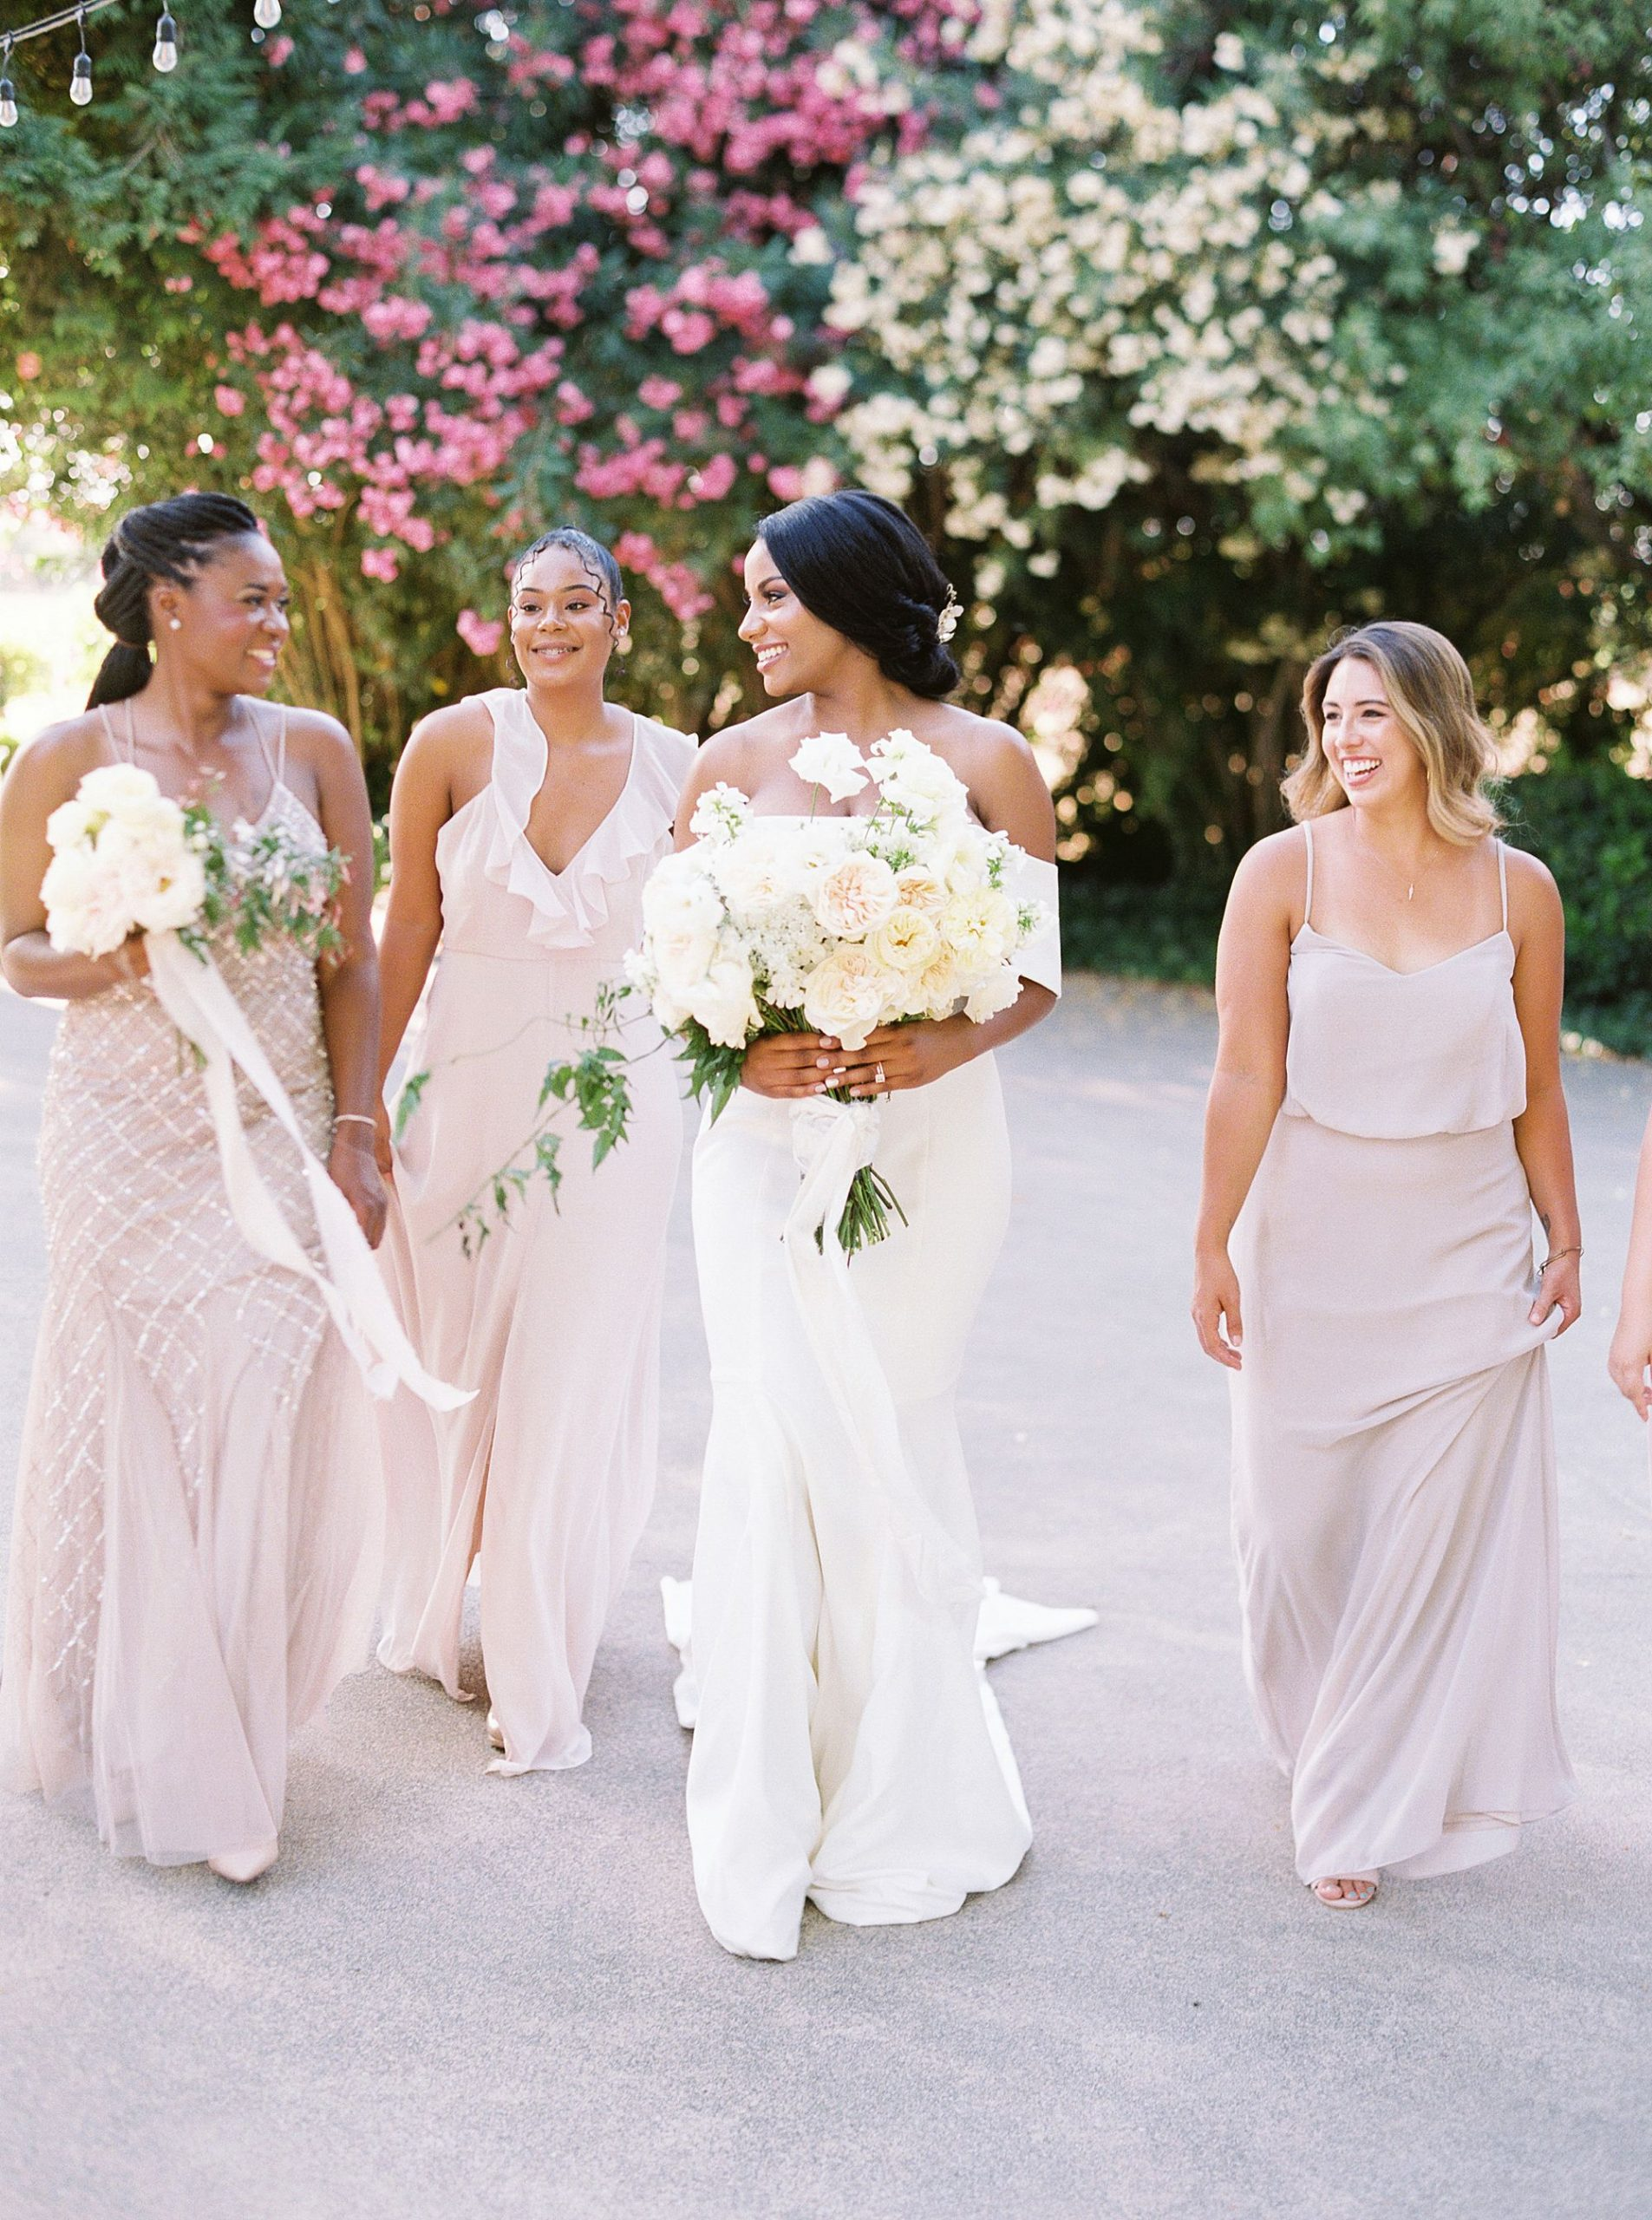 Park Winters Micro-Wedding Inspiration on Style Me Pretty - Stephanie Teague Events - Ashley Baumgartner - Park Winters Wedding - Black Tie Wedding - Micro-Wedding Sacramento Photographer_0010.jpg